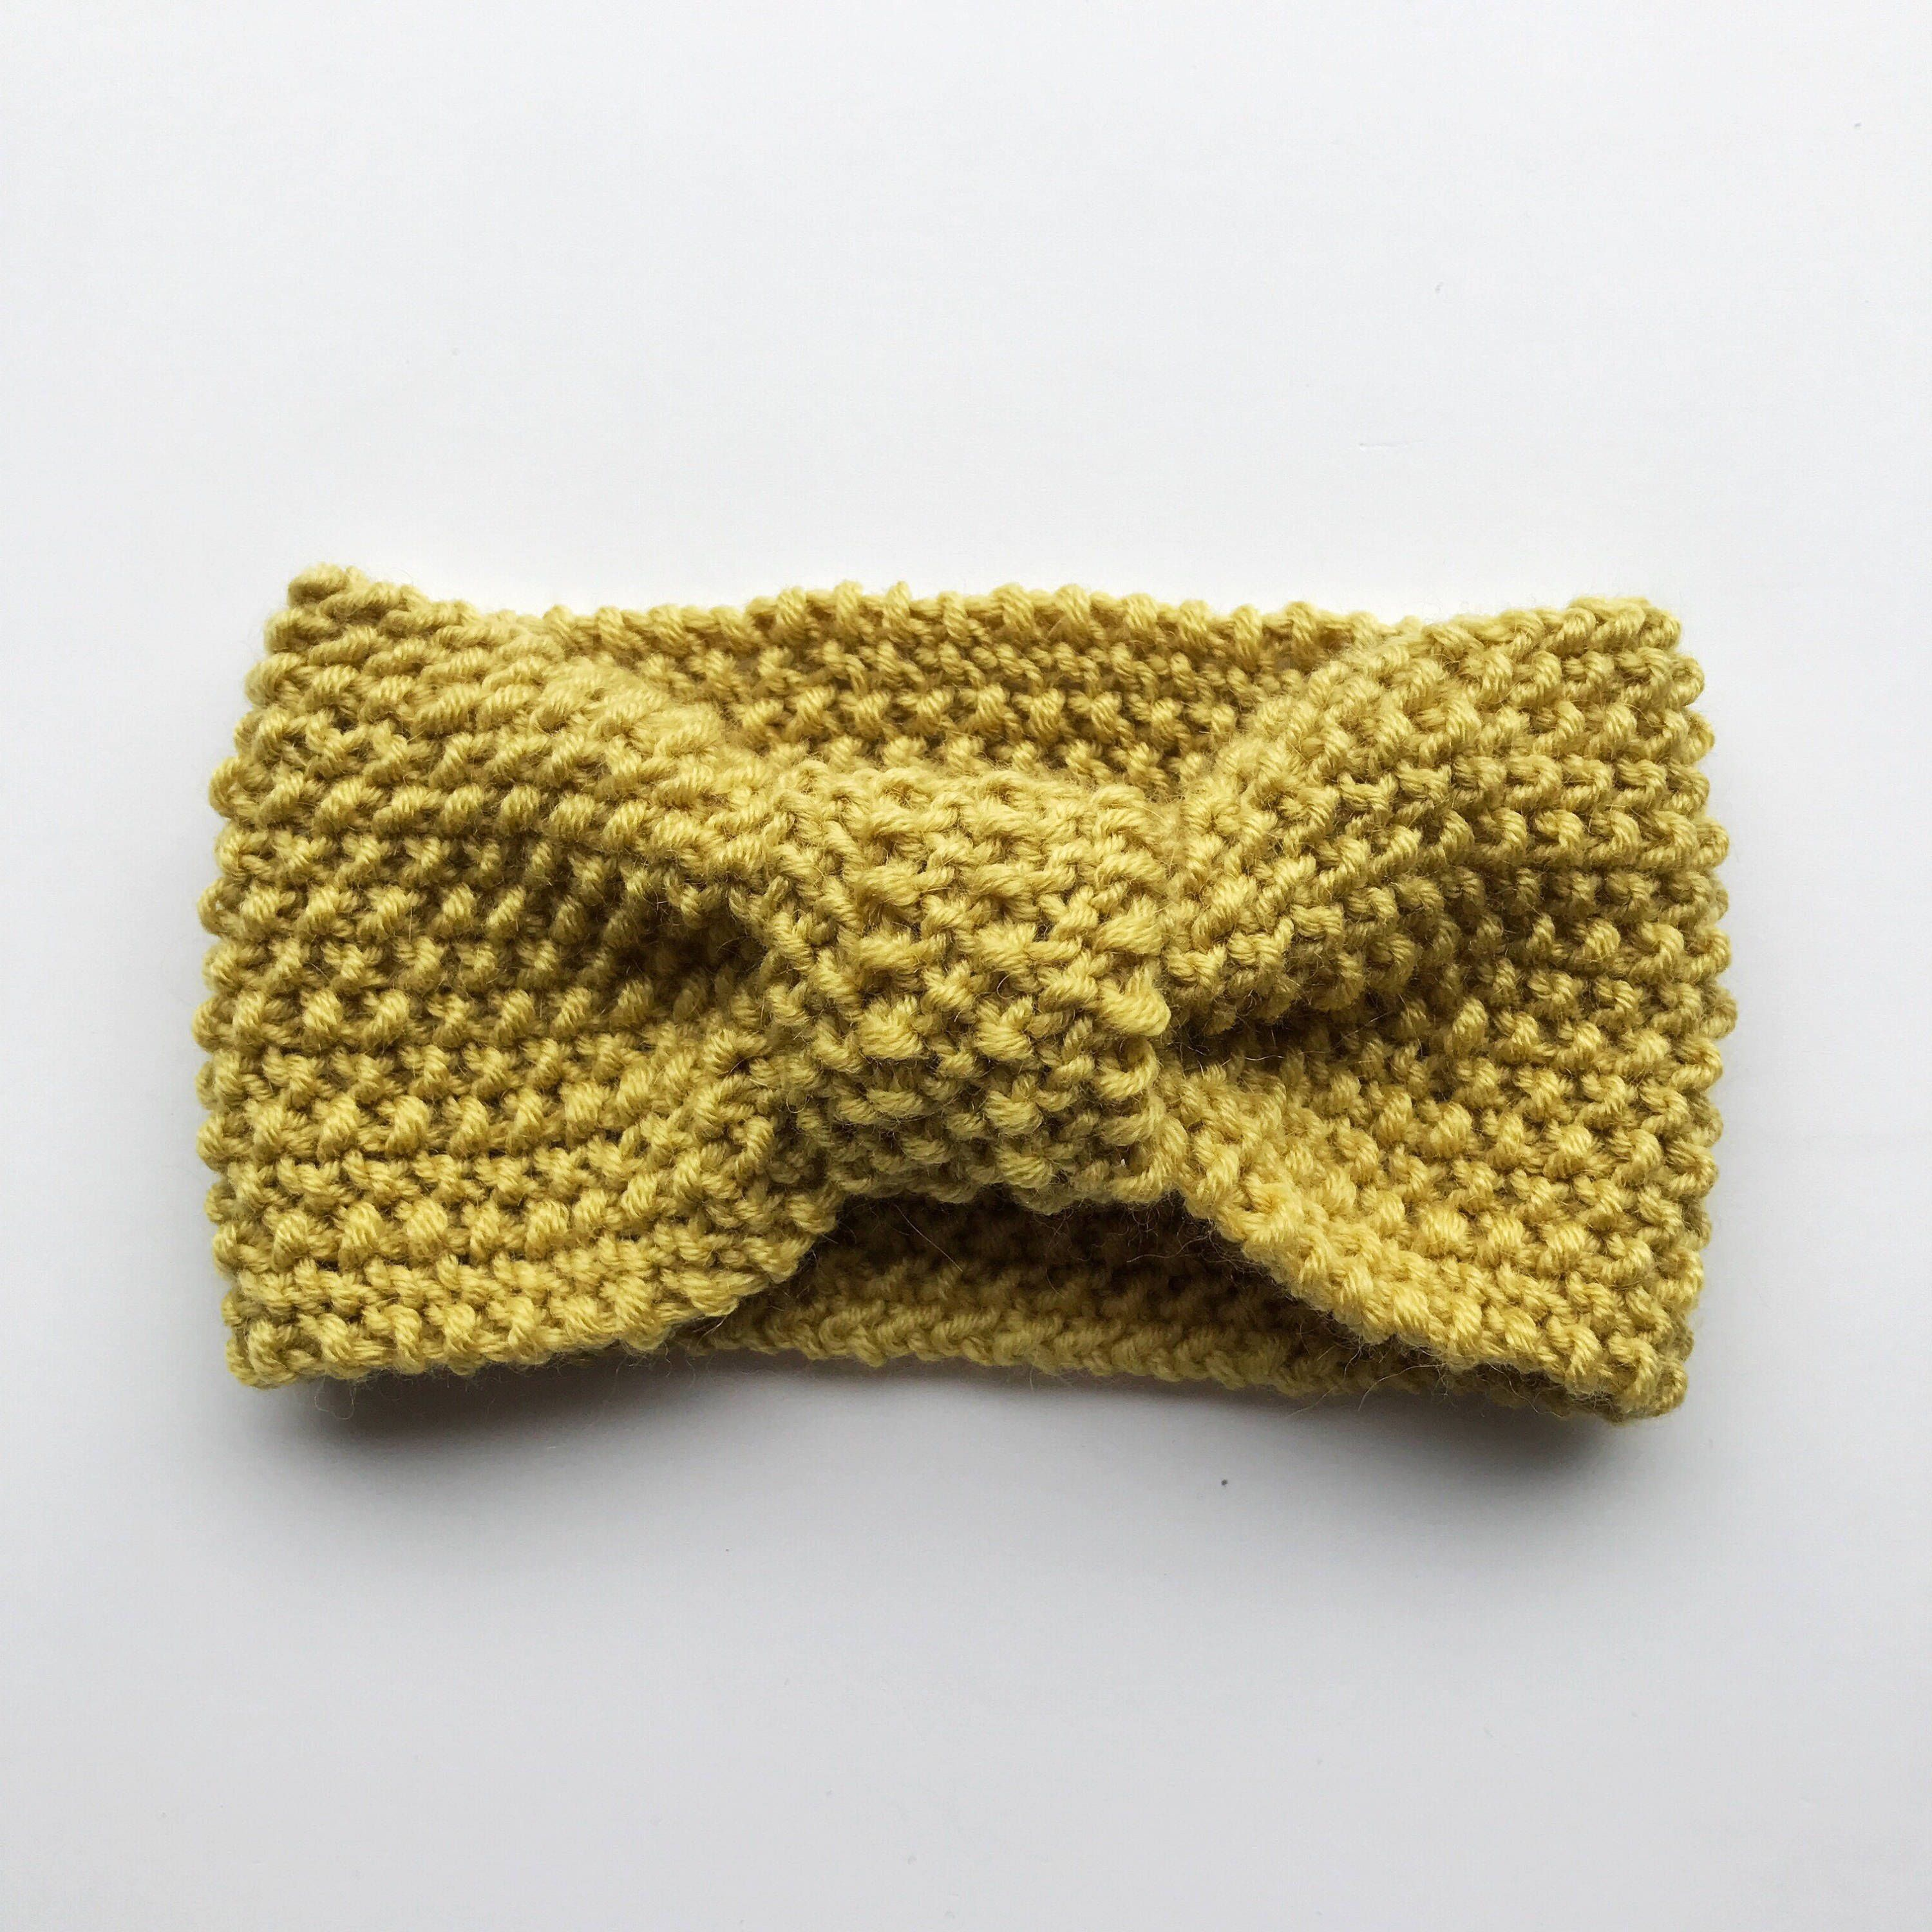 Knitted baby headband - kids hair accessories - childrens knitted ...